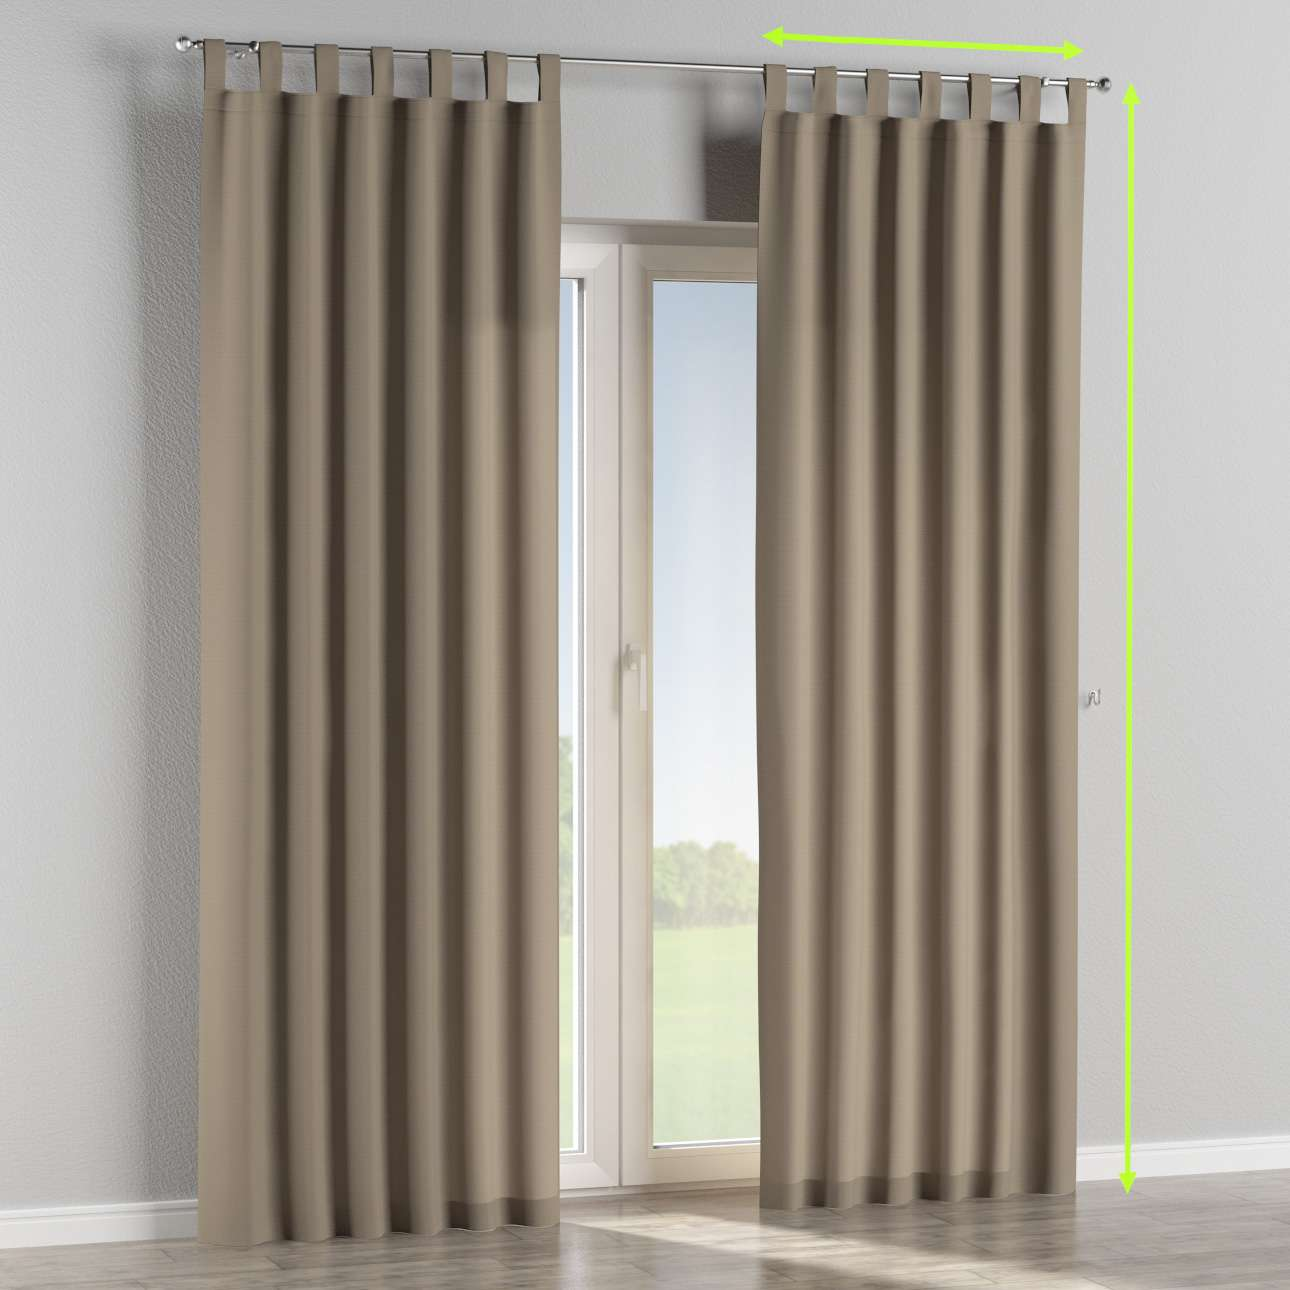 Tab top curtains in collection Panama Cotton, fabric: 702-28